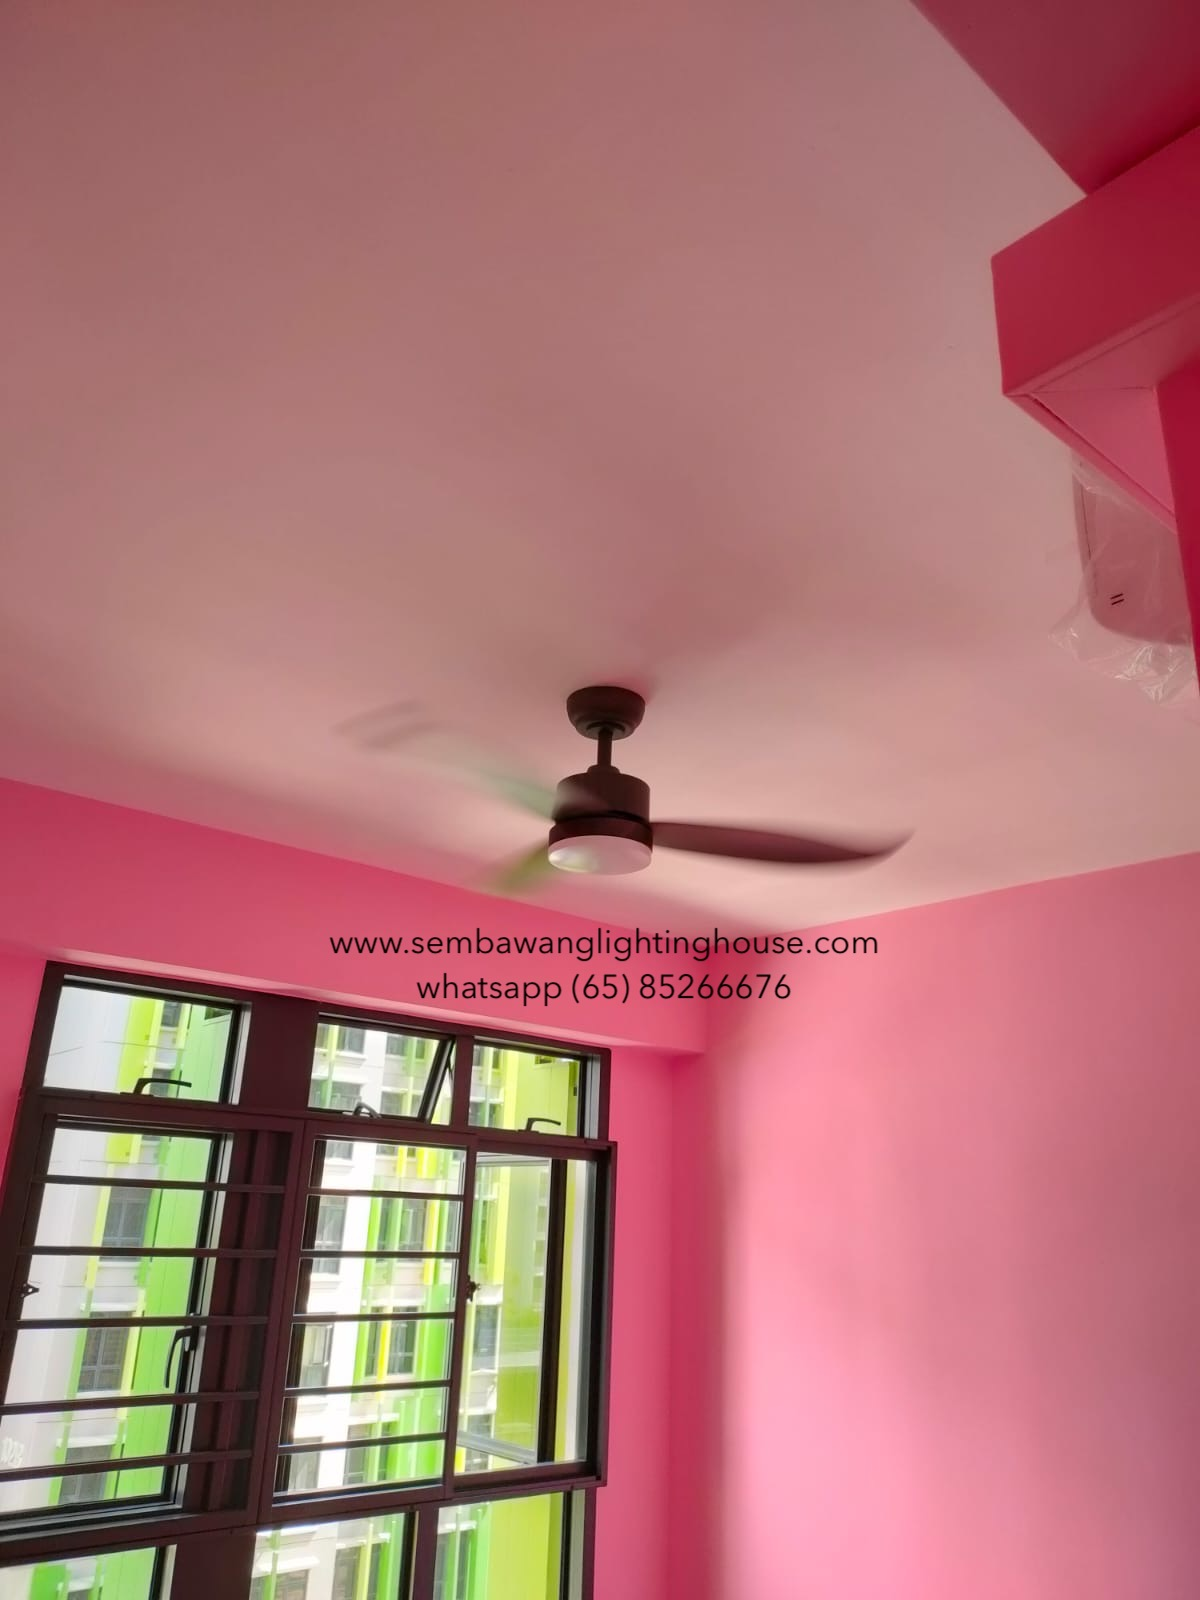 bestar-razor-oak-ceiling-fan-sample-sembawang-lighting-house-04.jpg